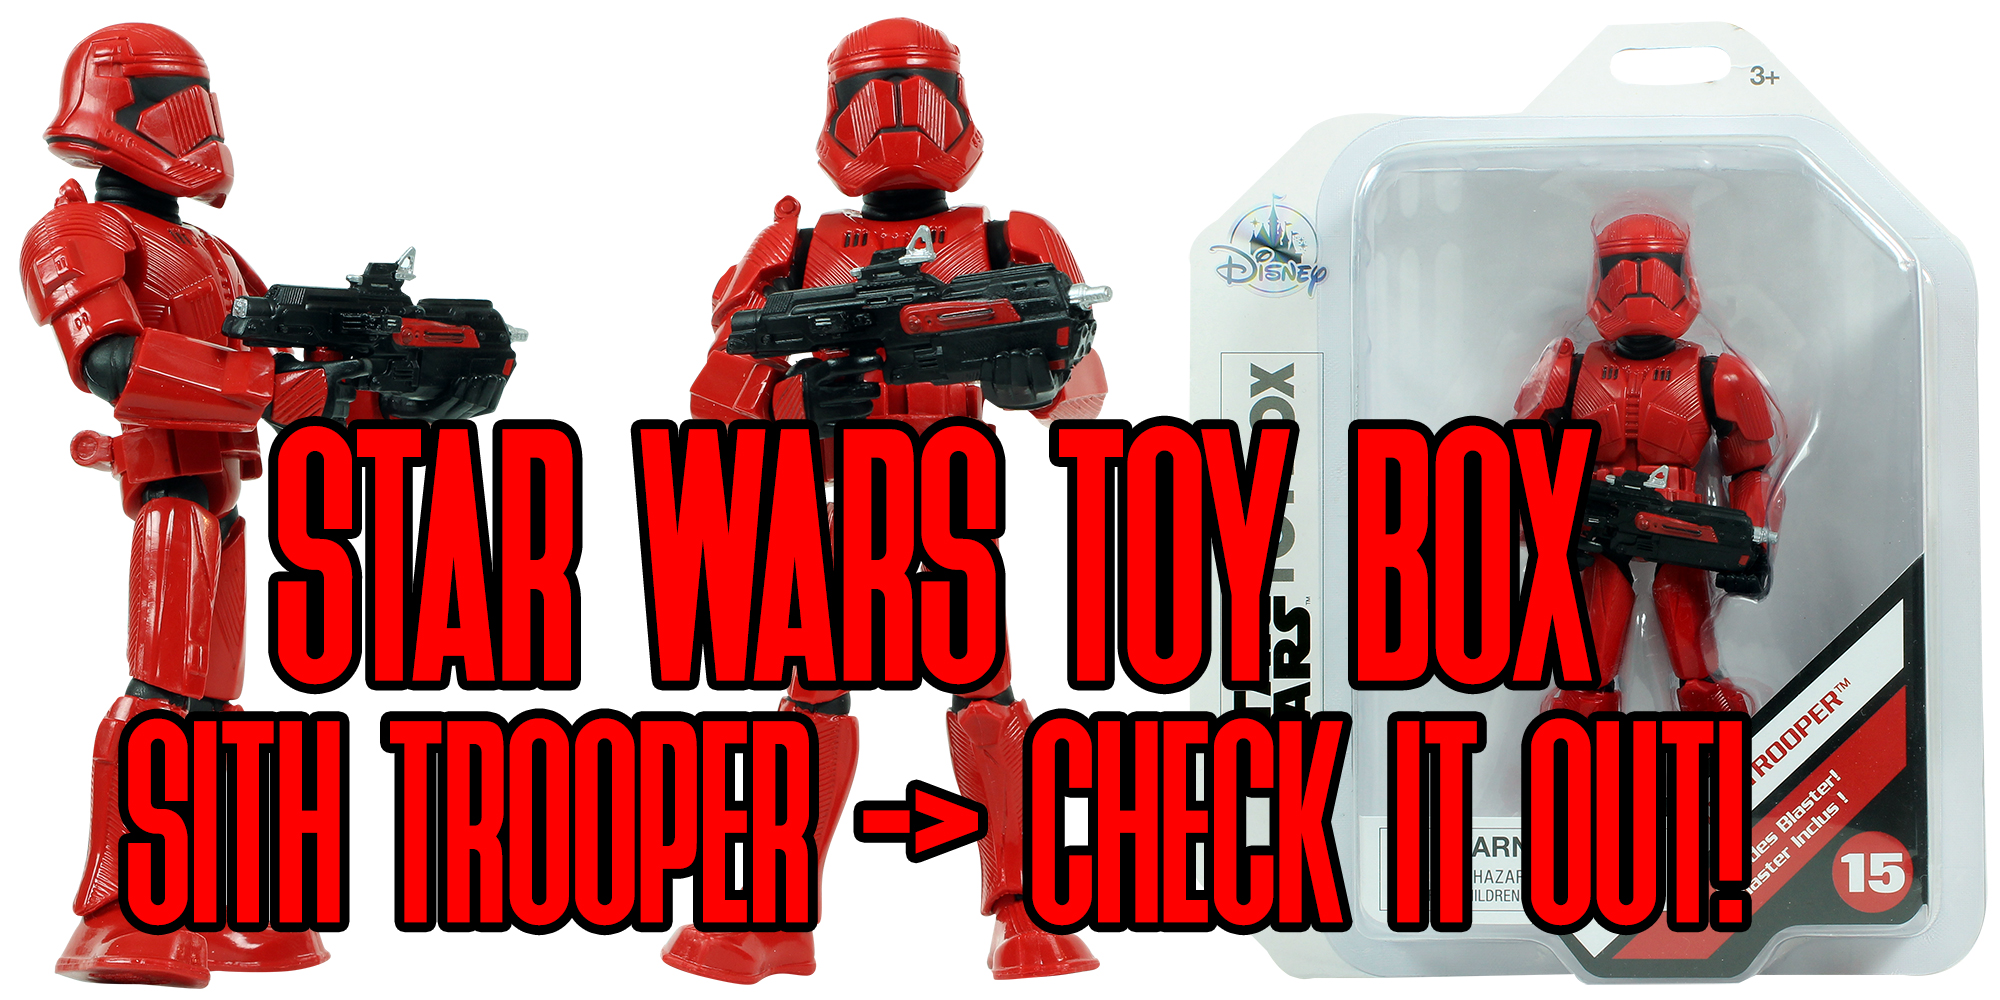 Toy Box Sith Trooper